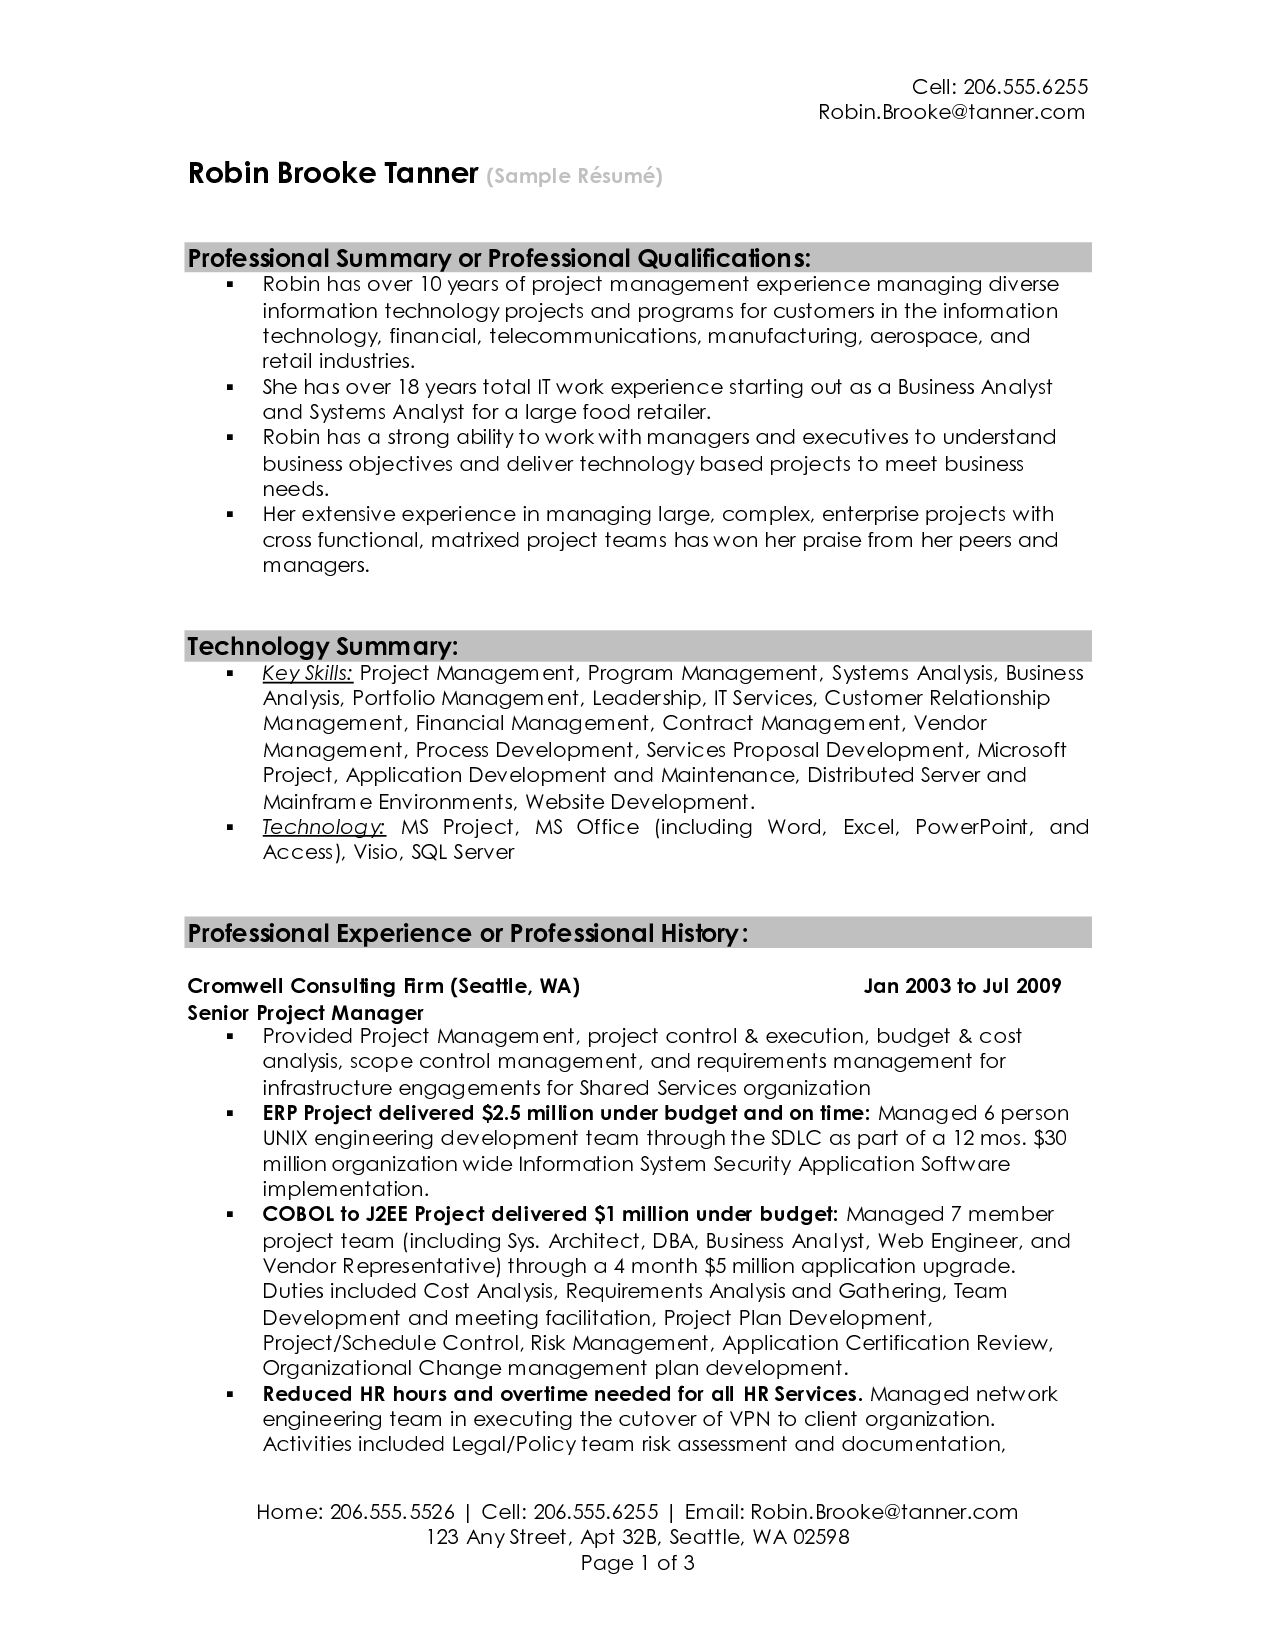 Summary Example For Resume | Sample Professional Summary Resume Koni Polycode Co